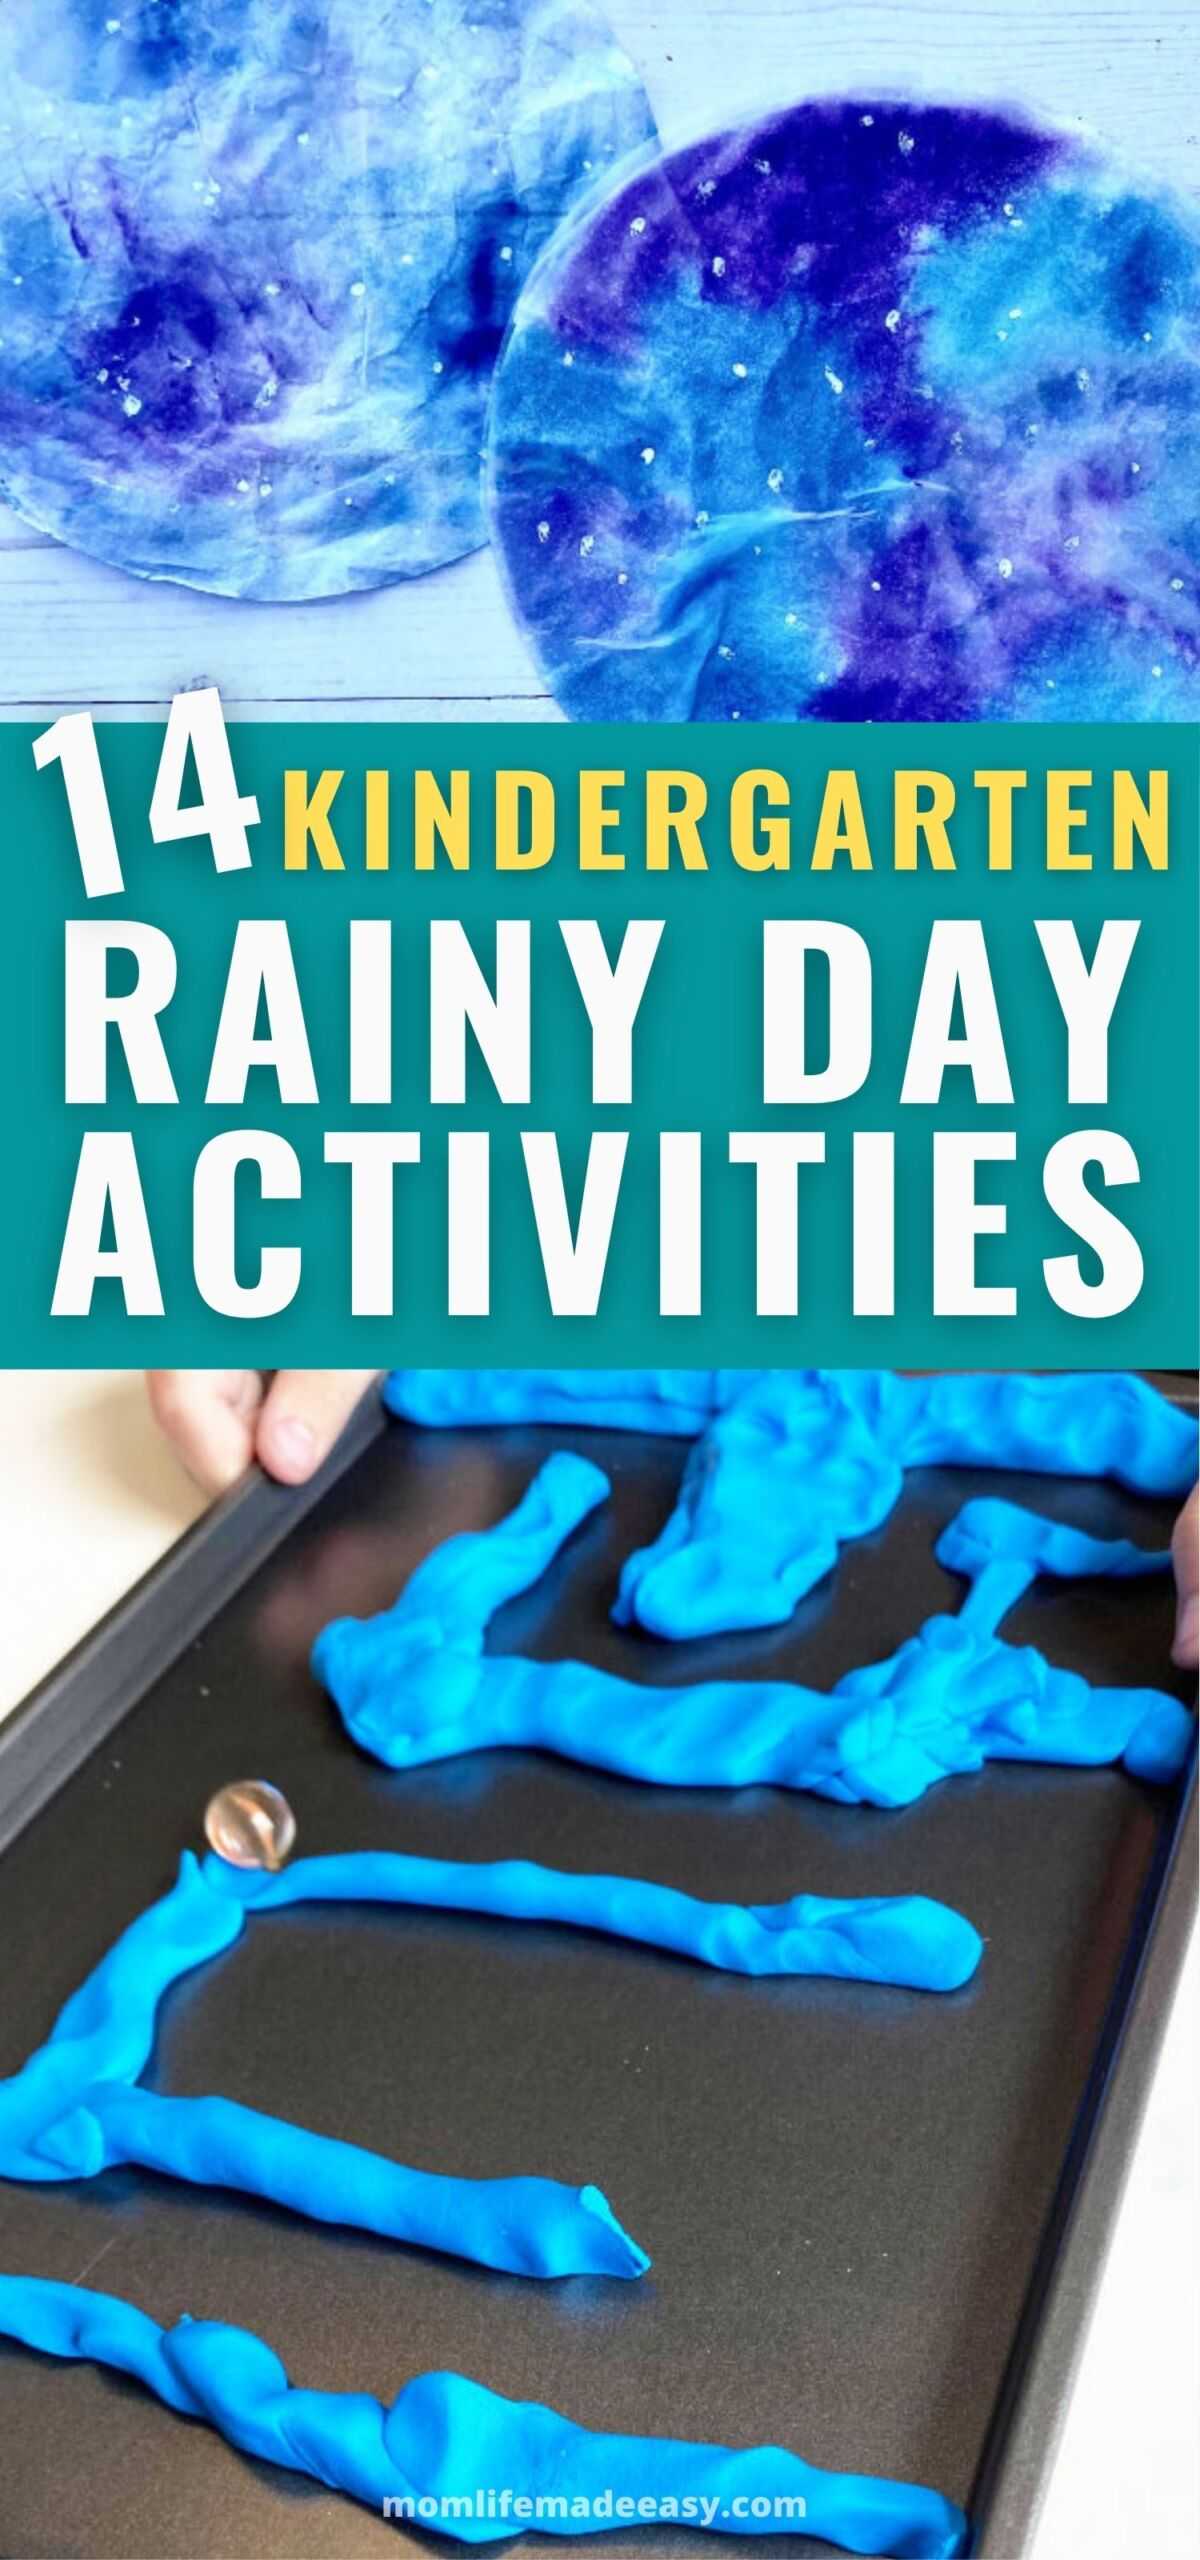 promotional collage of kindergarten activities to do on a rainy day